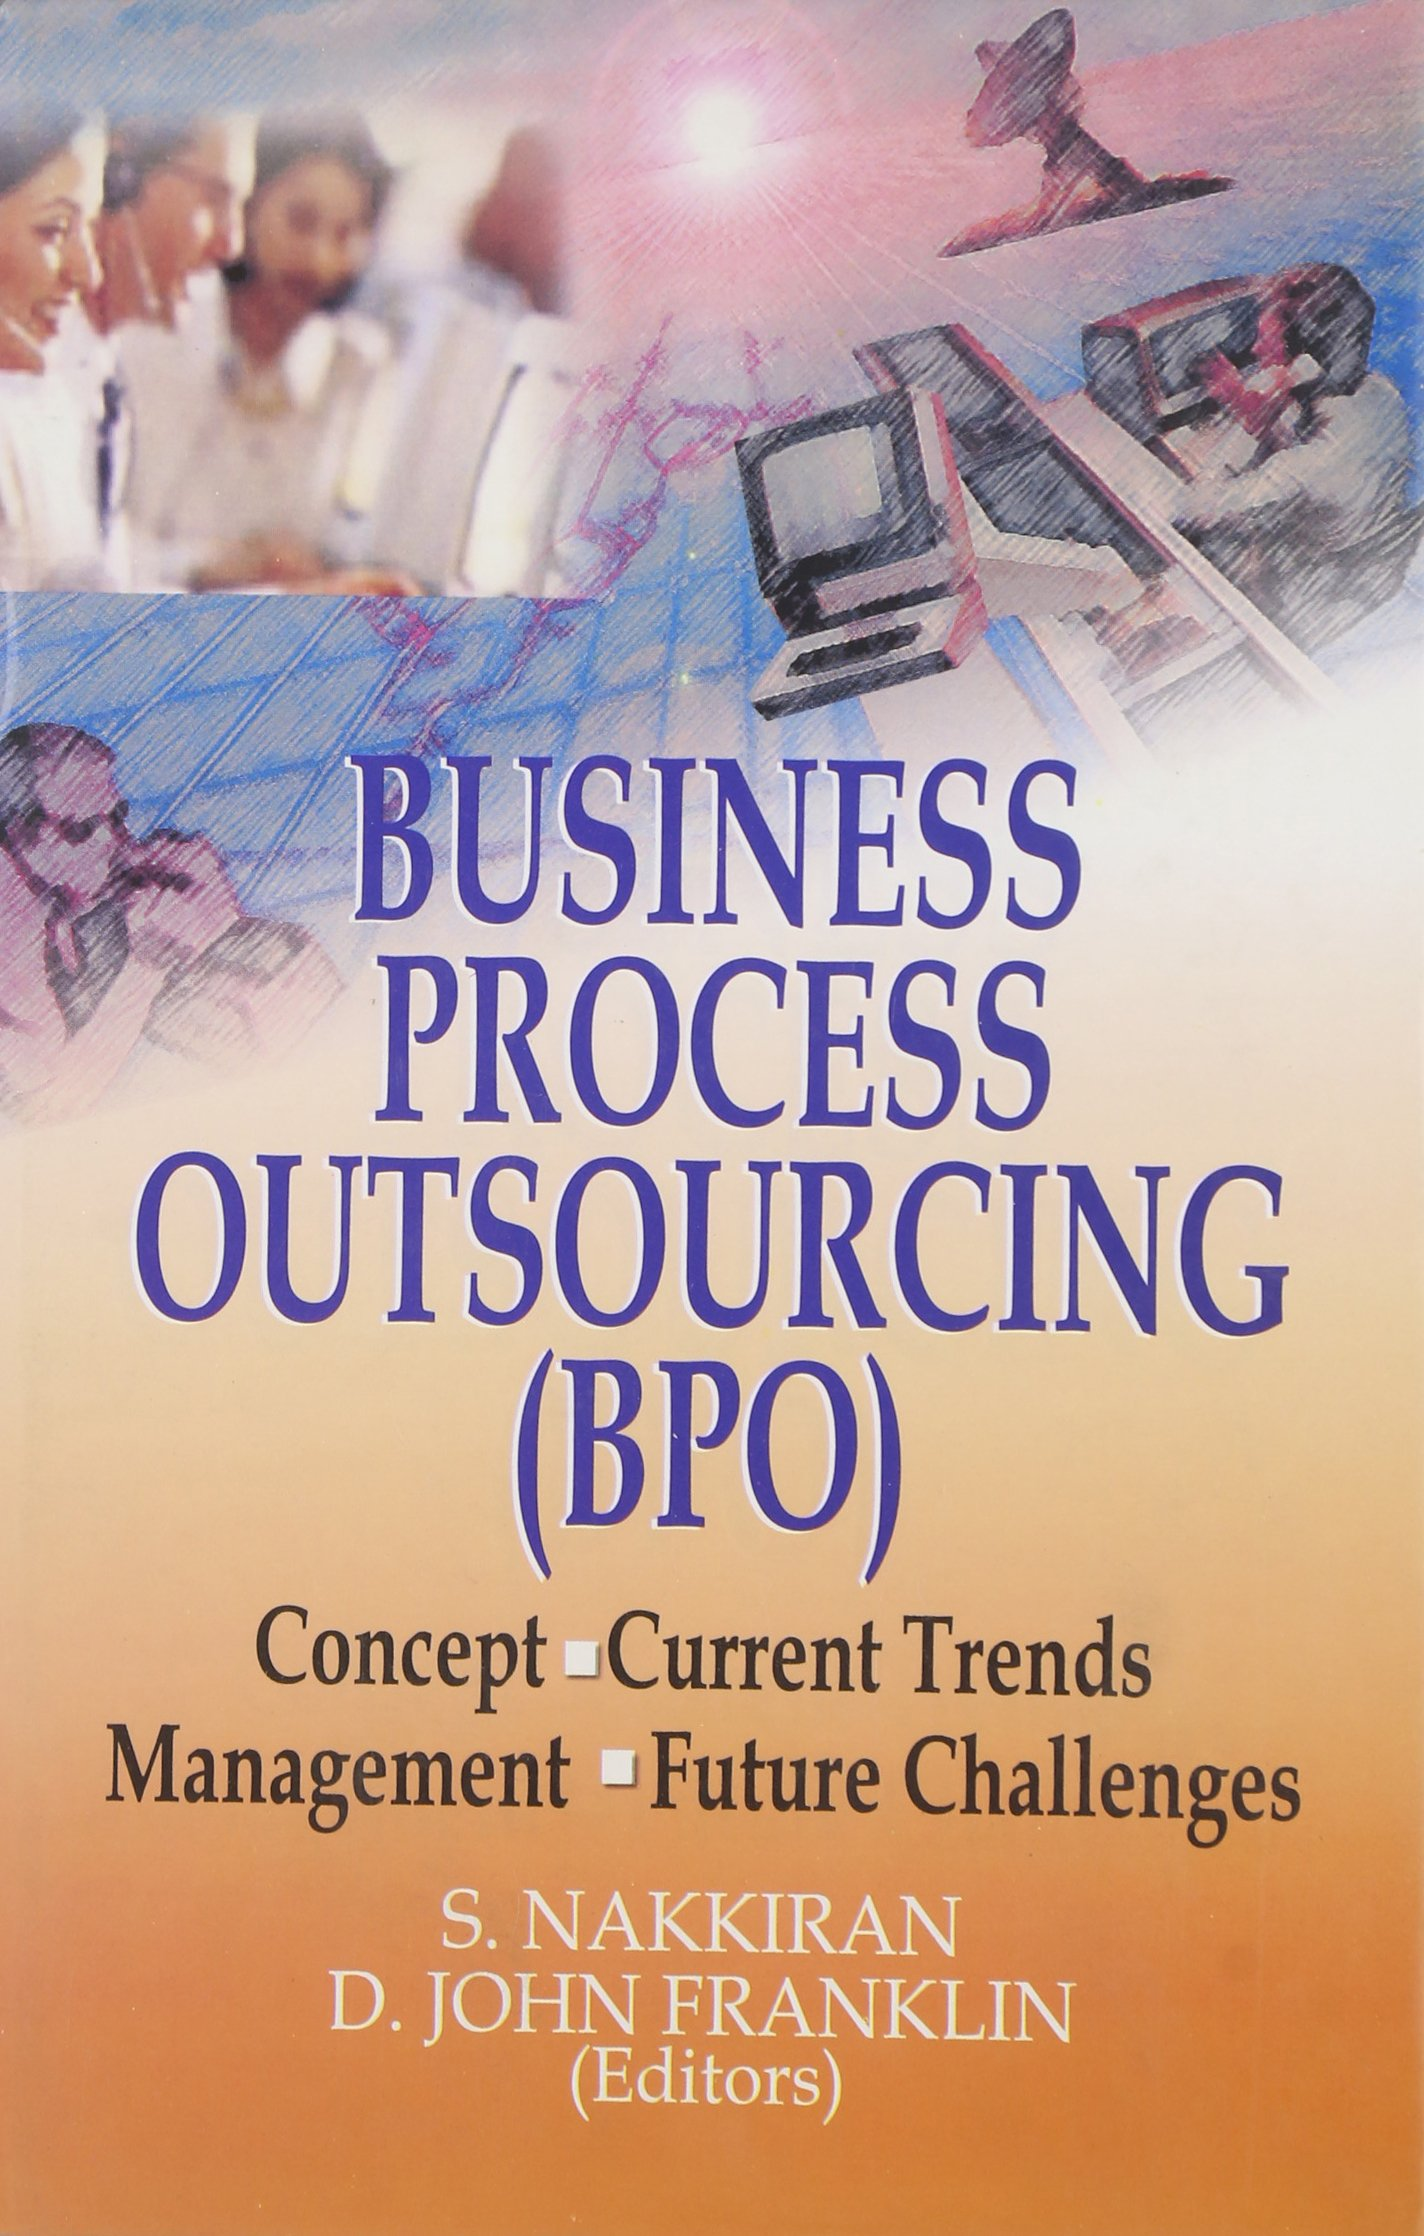 Download Business Process Outsourcing [BPO]: Concepts, Current Trends, Management, Future Challenges pdf